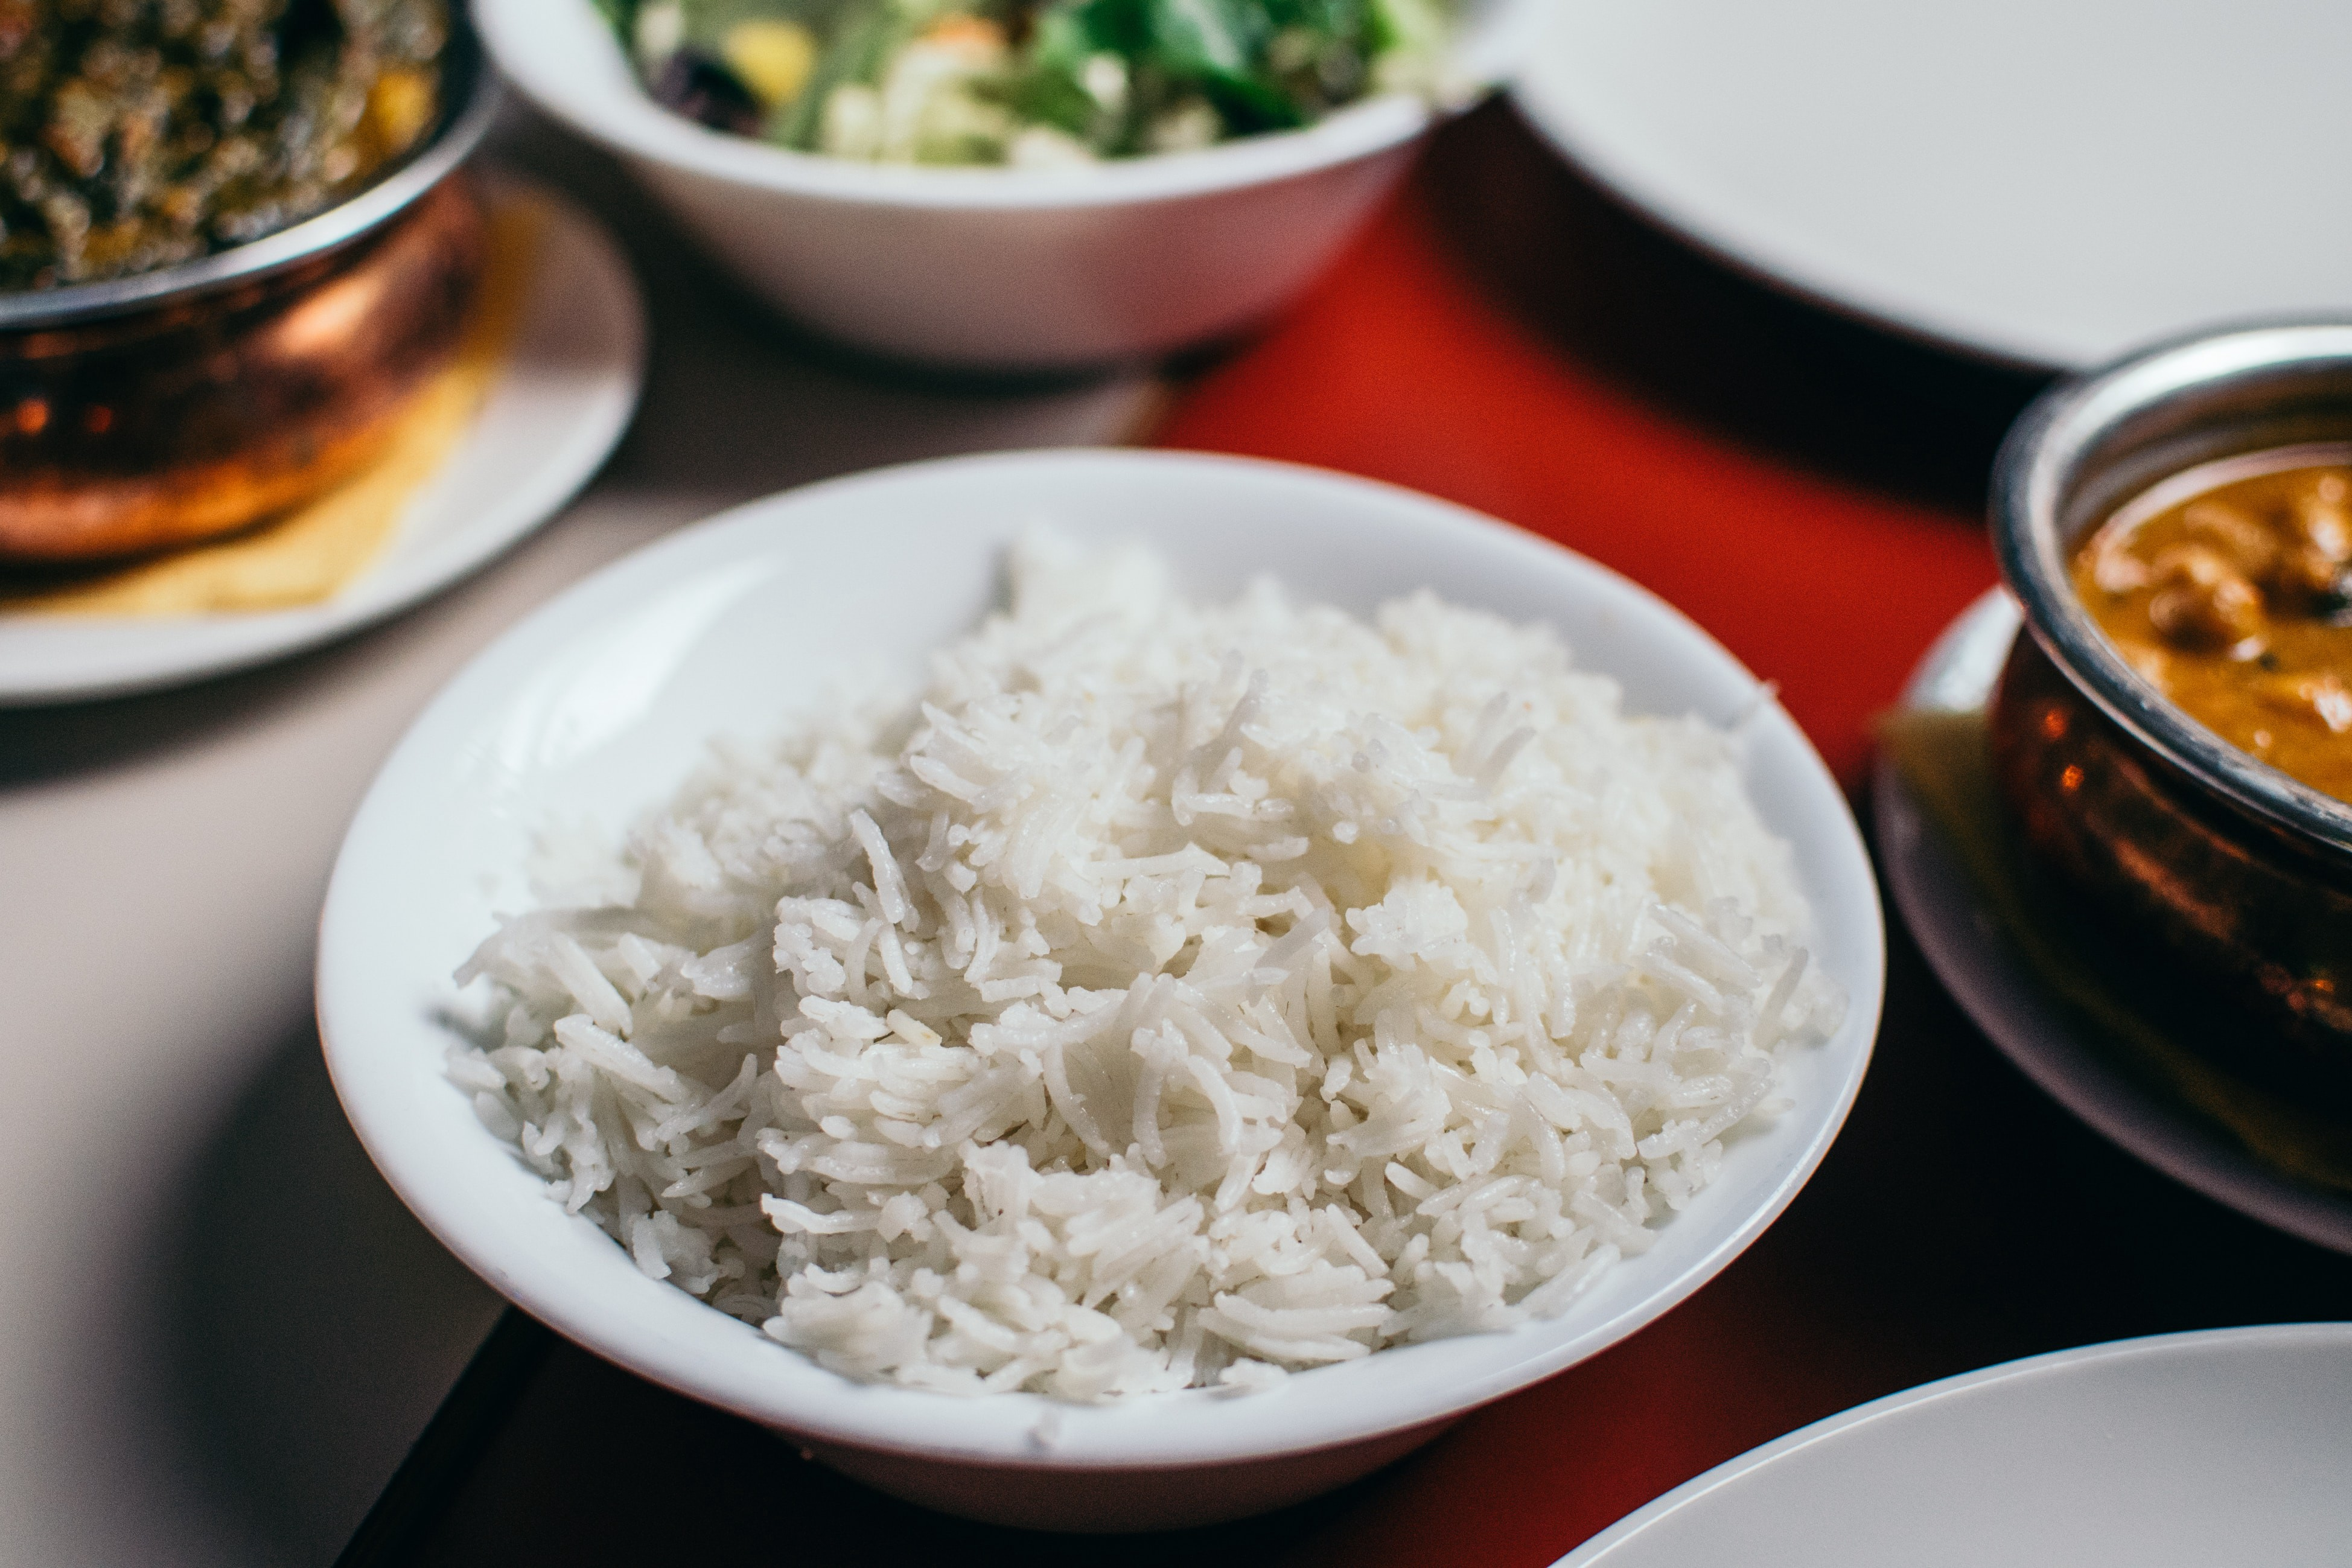 White rice in a bowl